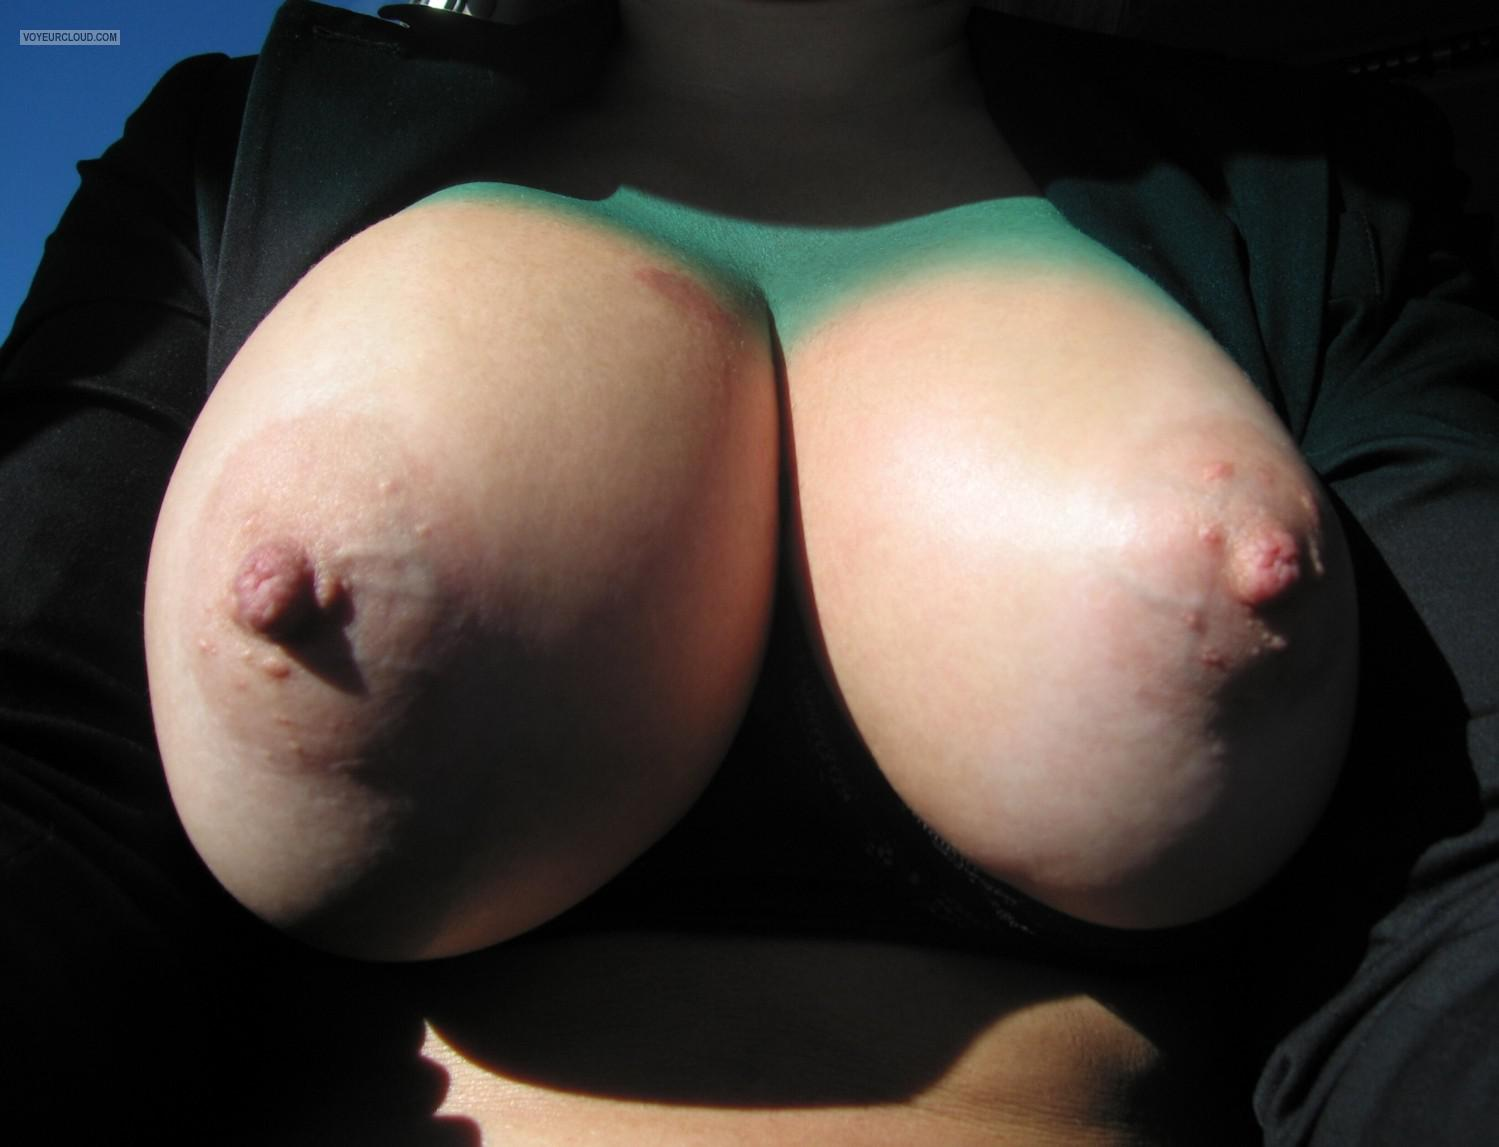 Tit Flash: My Big Tits (Selfie) - Faans Flasher from United States